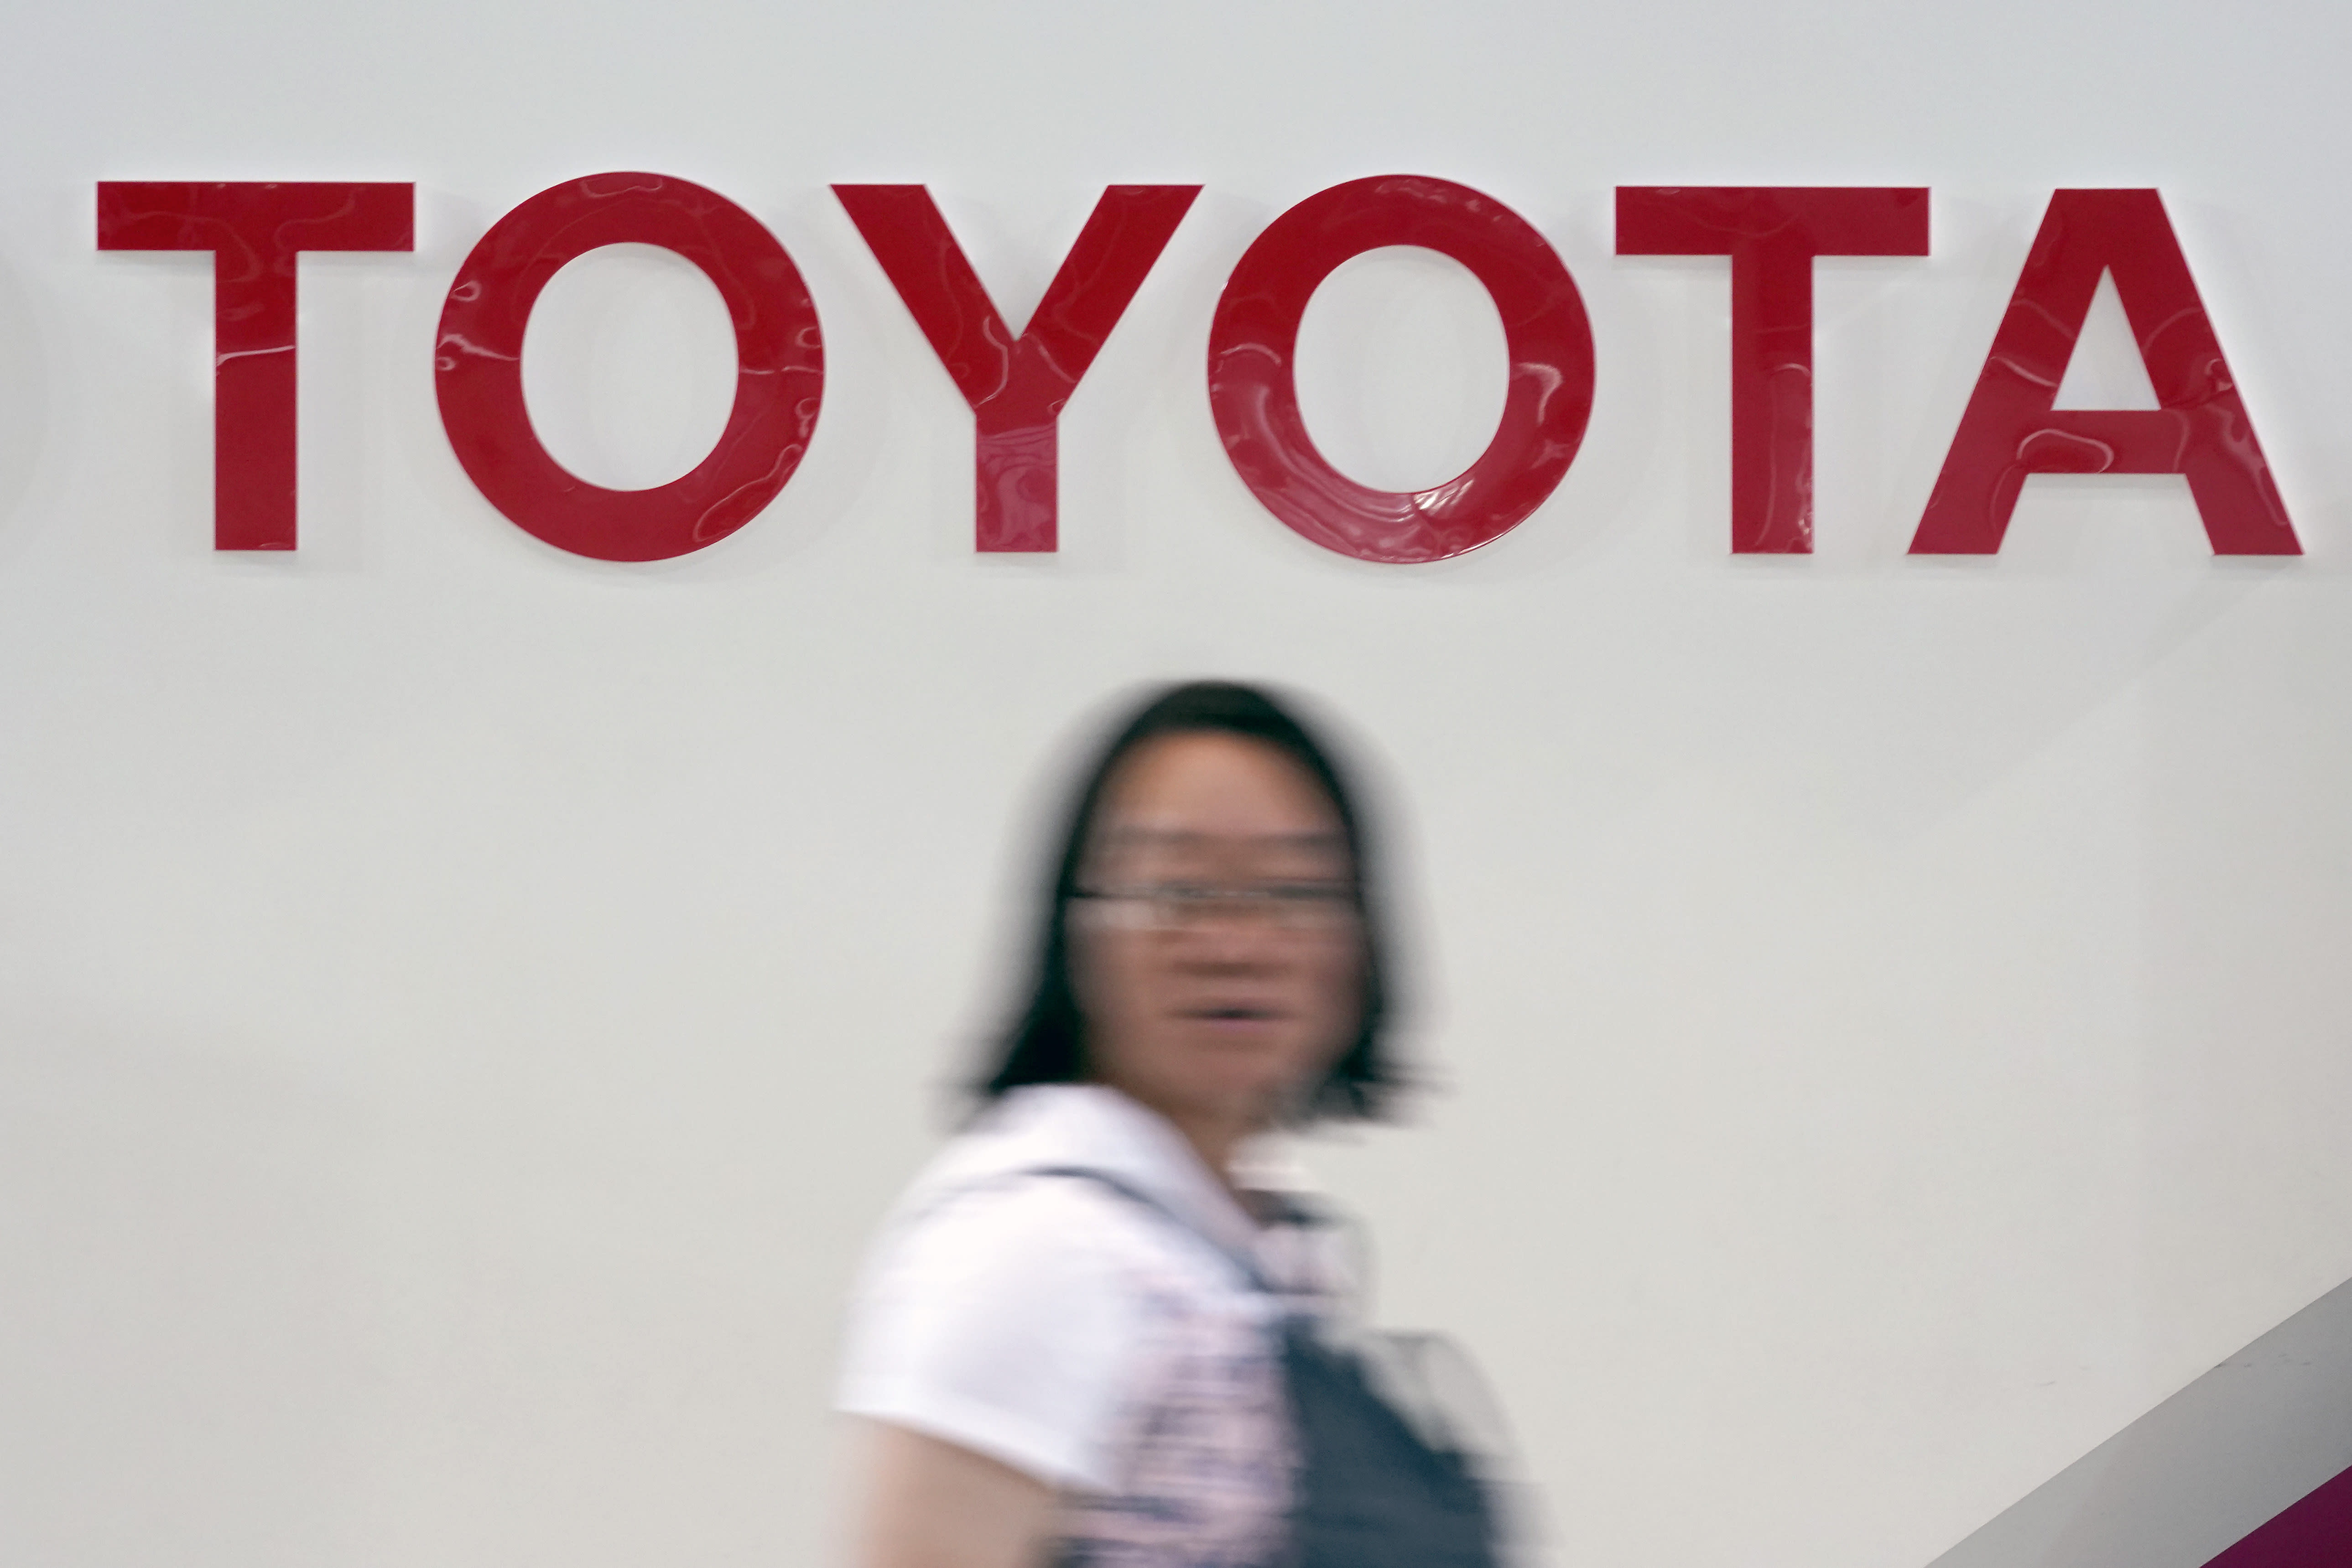 FILE - In this Aug. 2, 2019, file photo, a visitor walks by the logo of Toyota at a show room in Tokyo. Japan's top automaker Toyota has seen a 1% rise in July-September profit as vehicle sales grew around the world, according to Toyota's report on Thursday, Nov. 7, 2019. (AP Photo/Eugene Hoshiko)